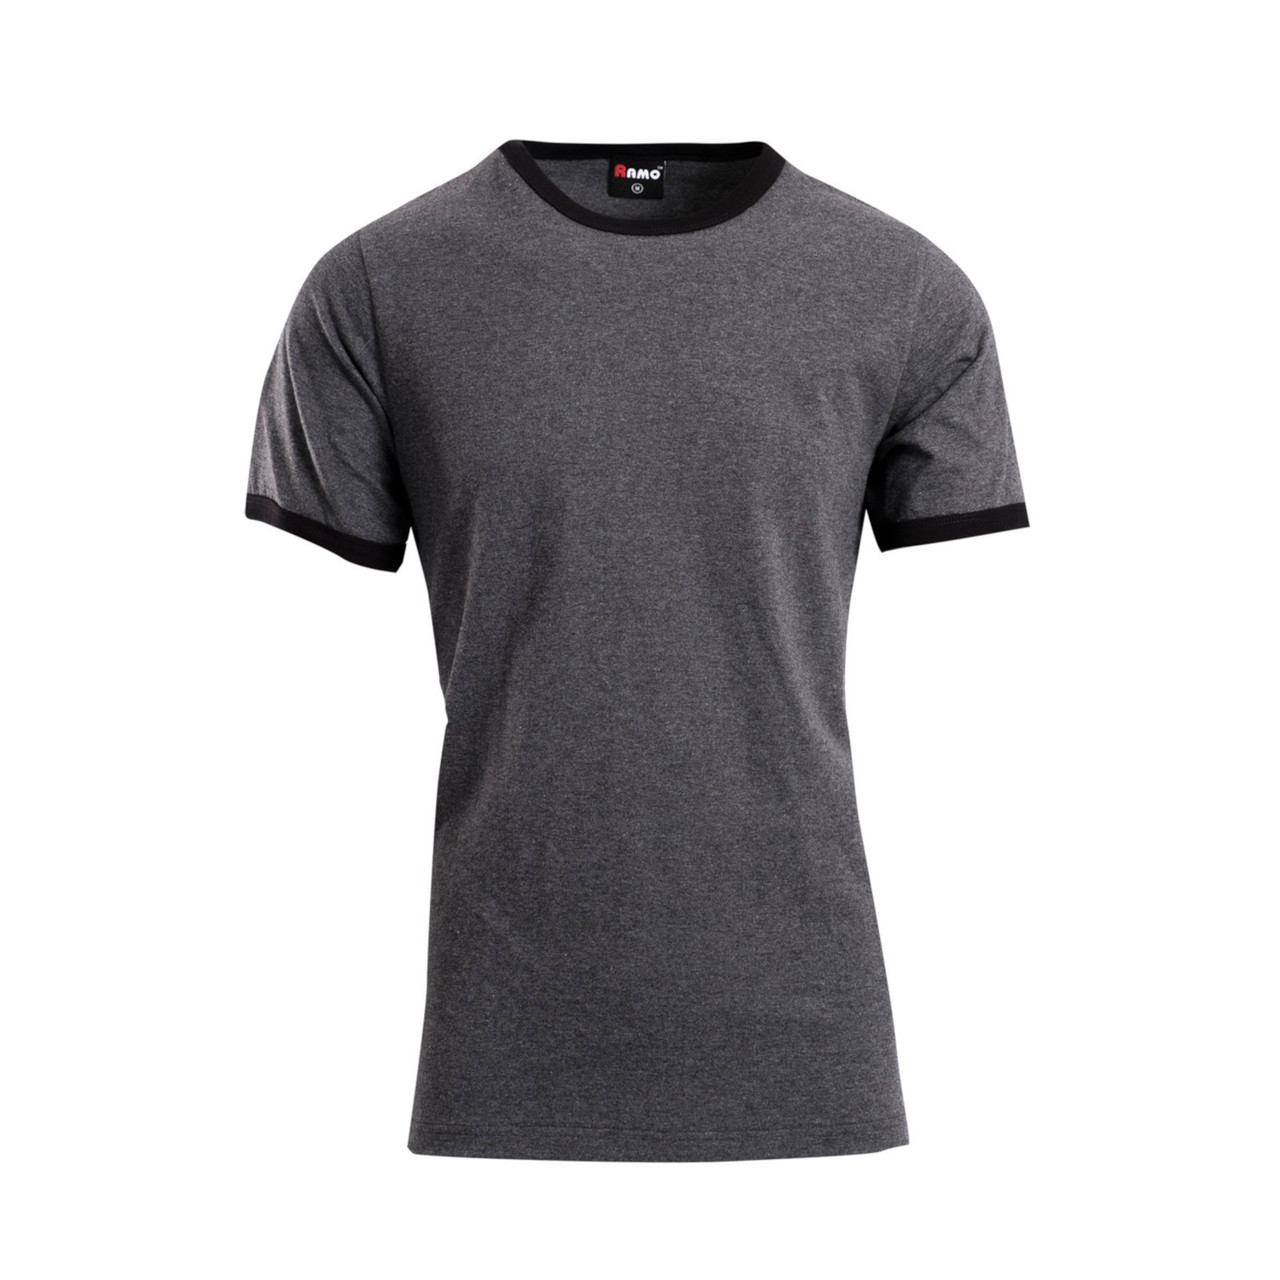 the cheapest a great variety of models cheap for discount MAX | T-Shirts Slim Fit Retro Ringer-Style